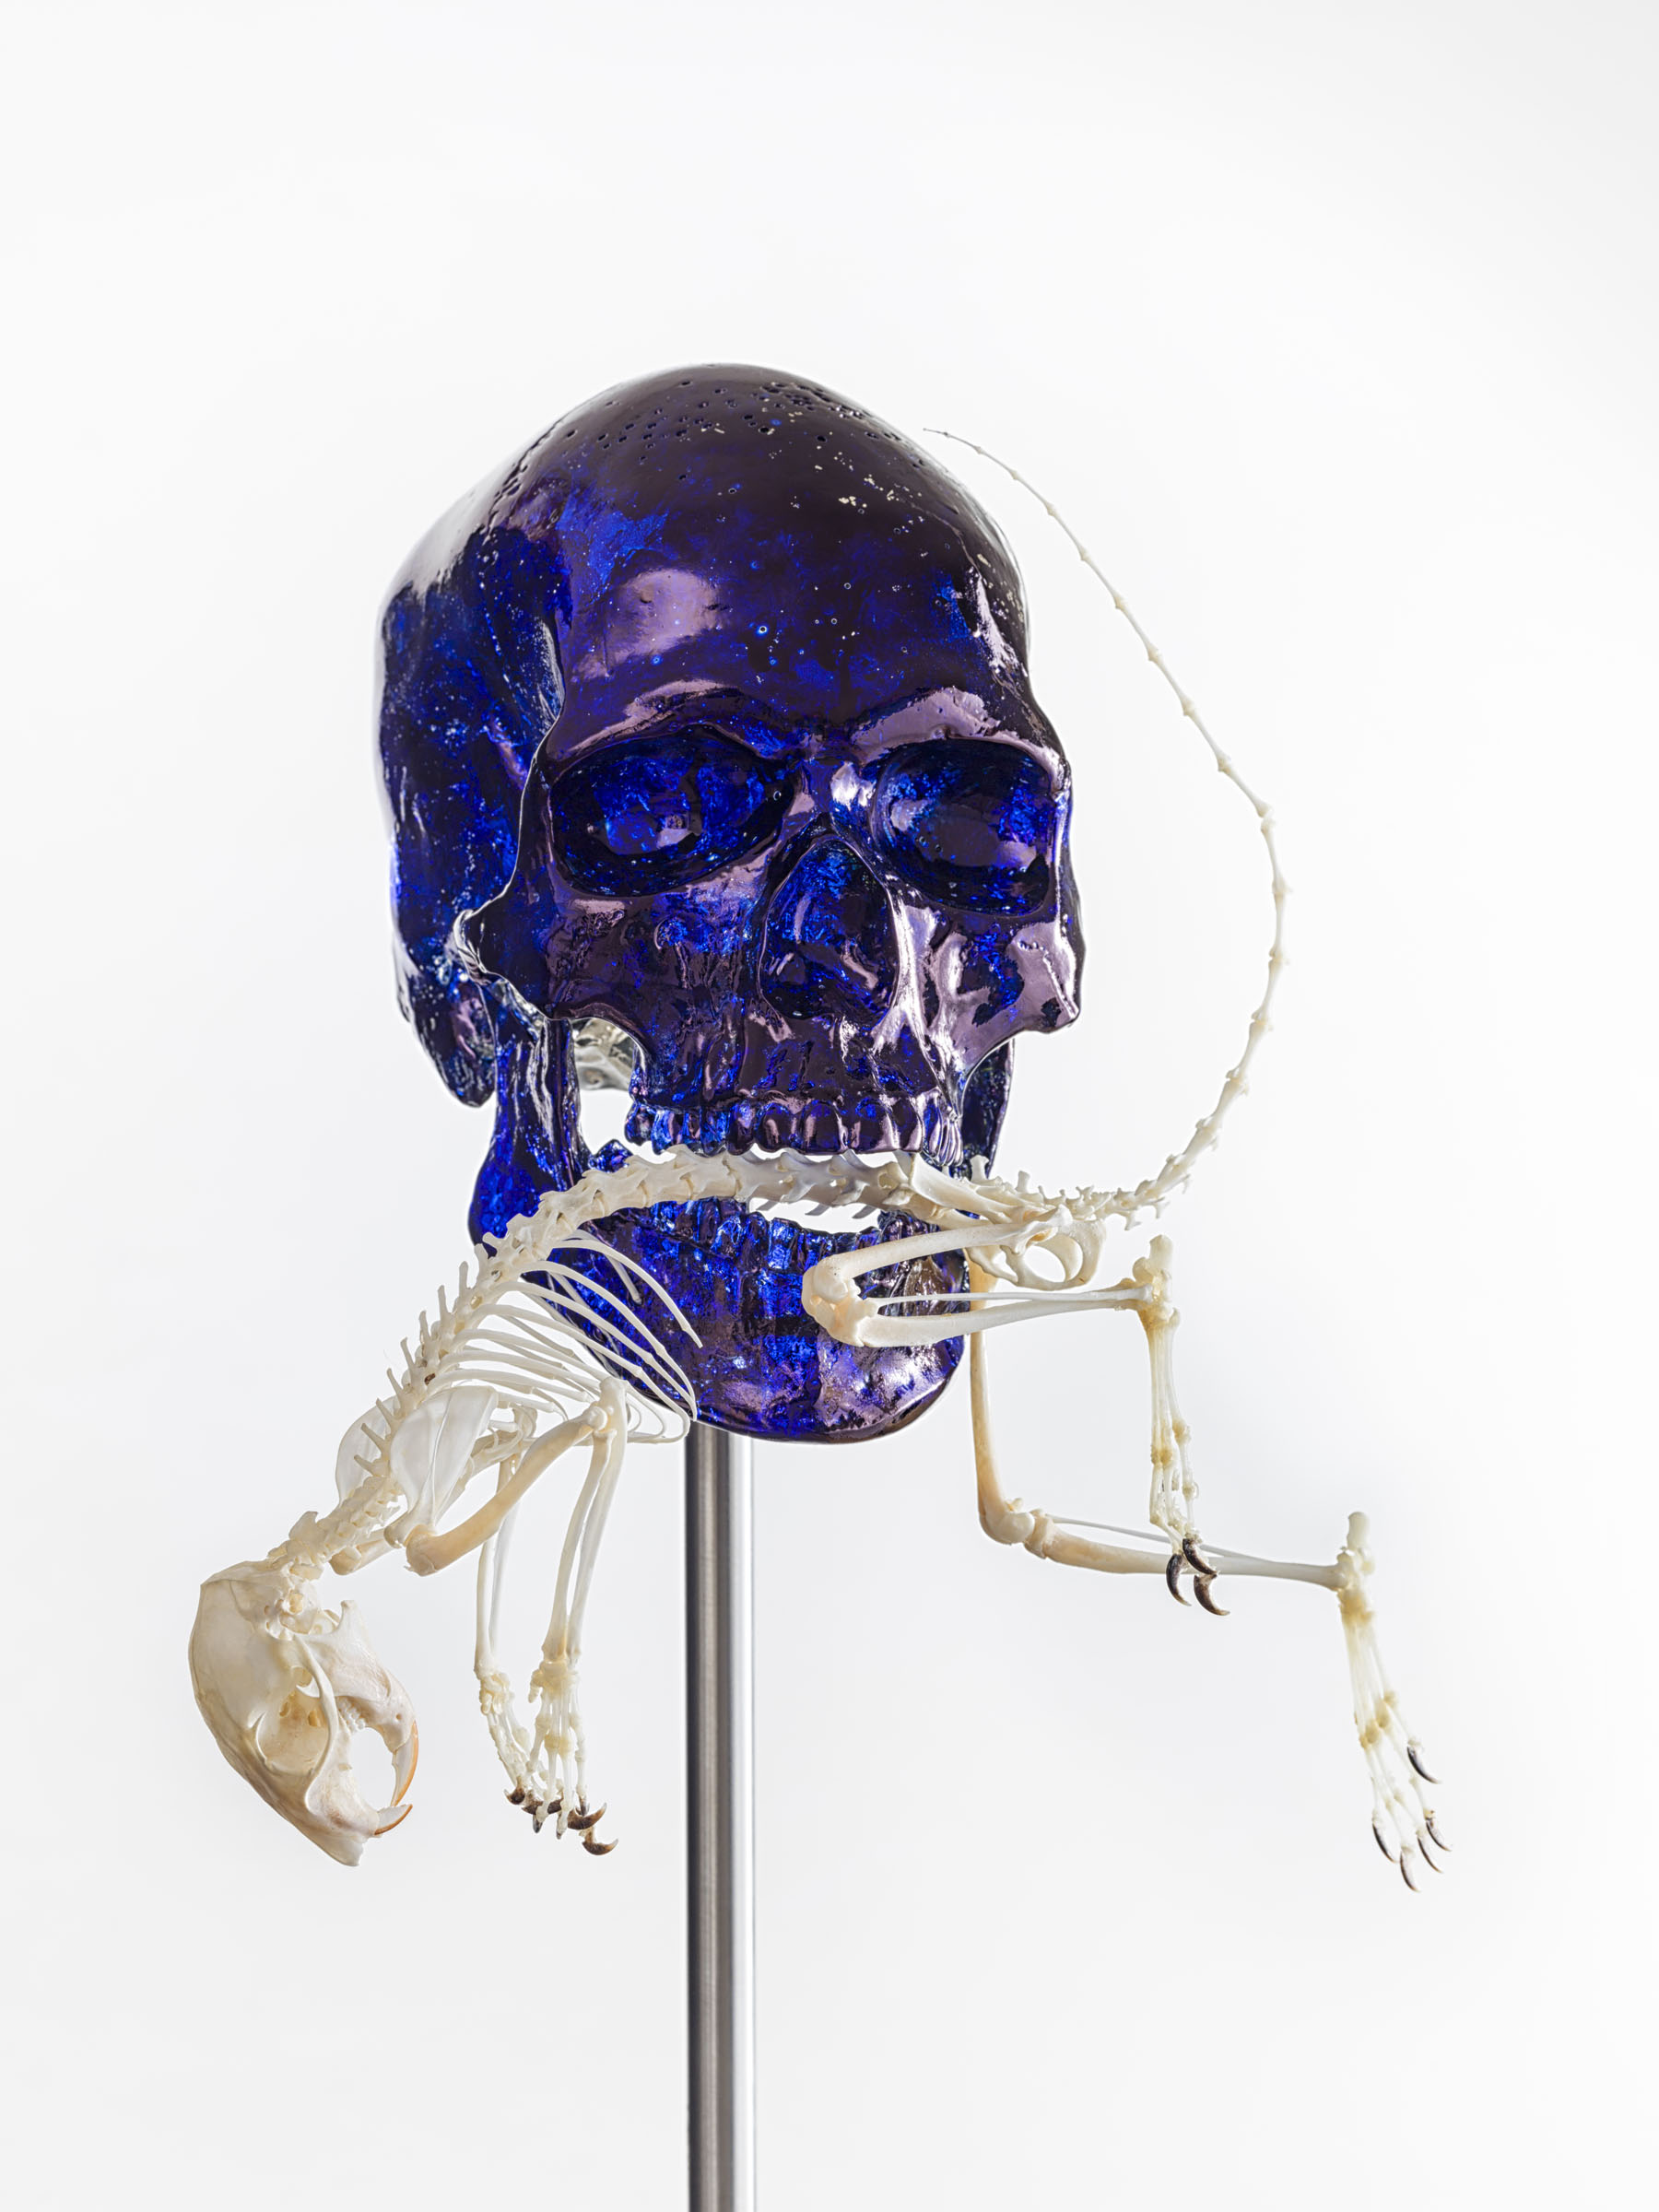 Jan Fabre, Skull with squirrel, 2017